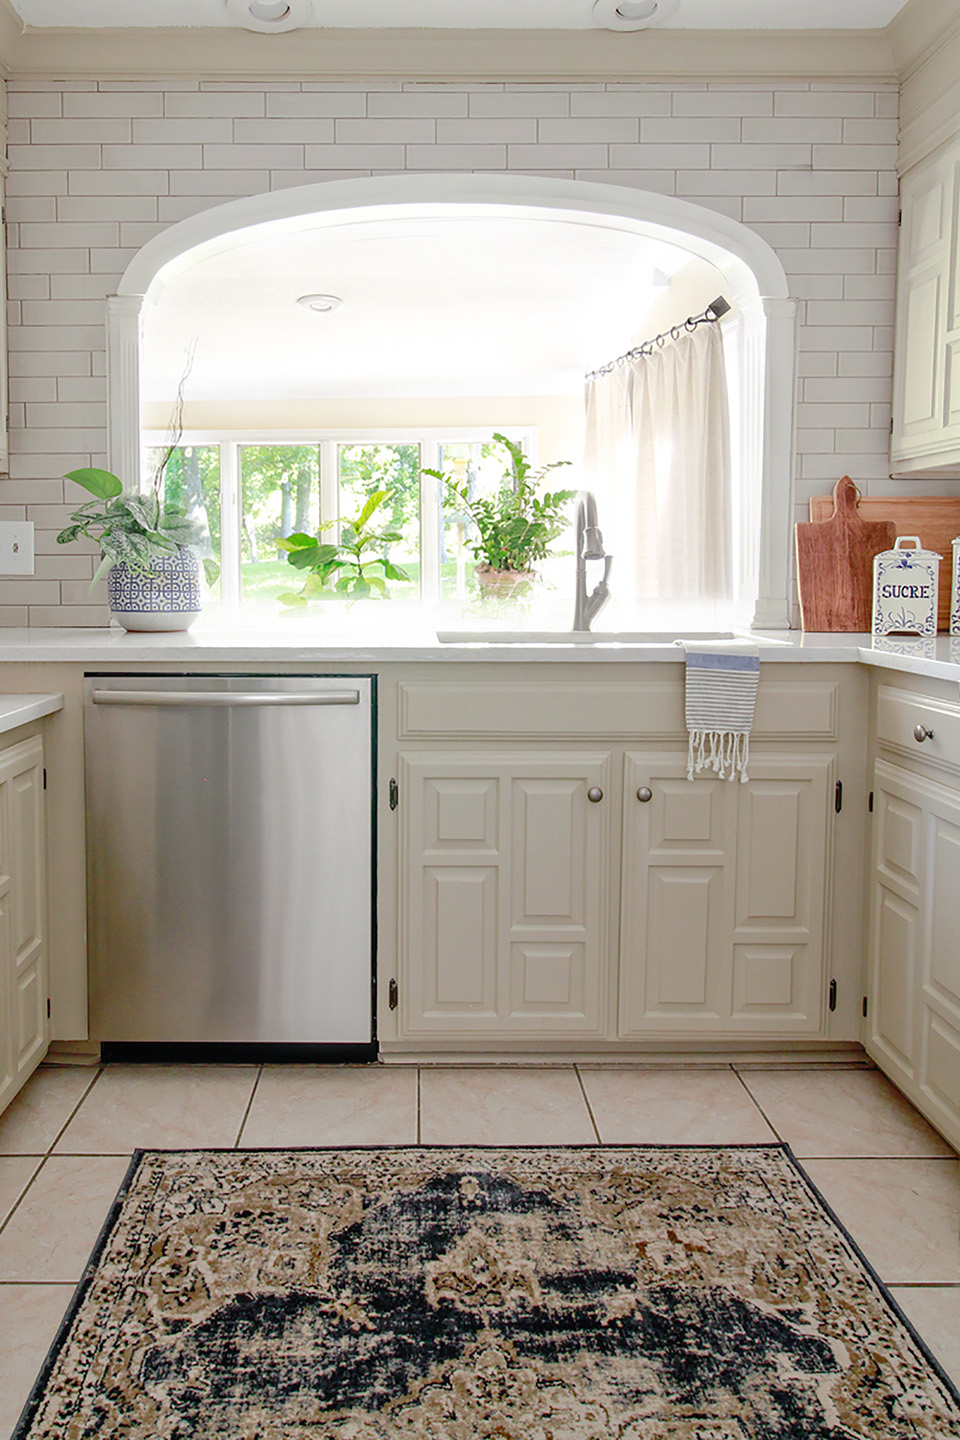 Cost To Remodel A Kitchen: Kitchen Remodel On A Budget: 5 Low-Cost Ideas To Help You